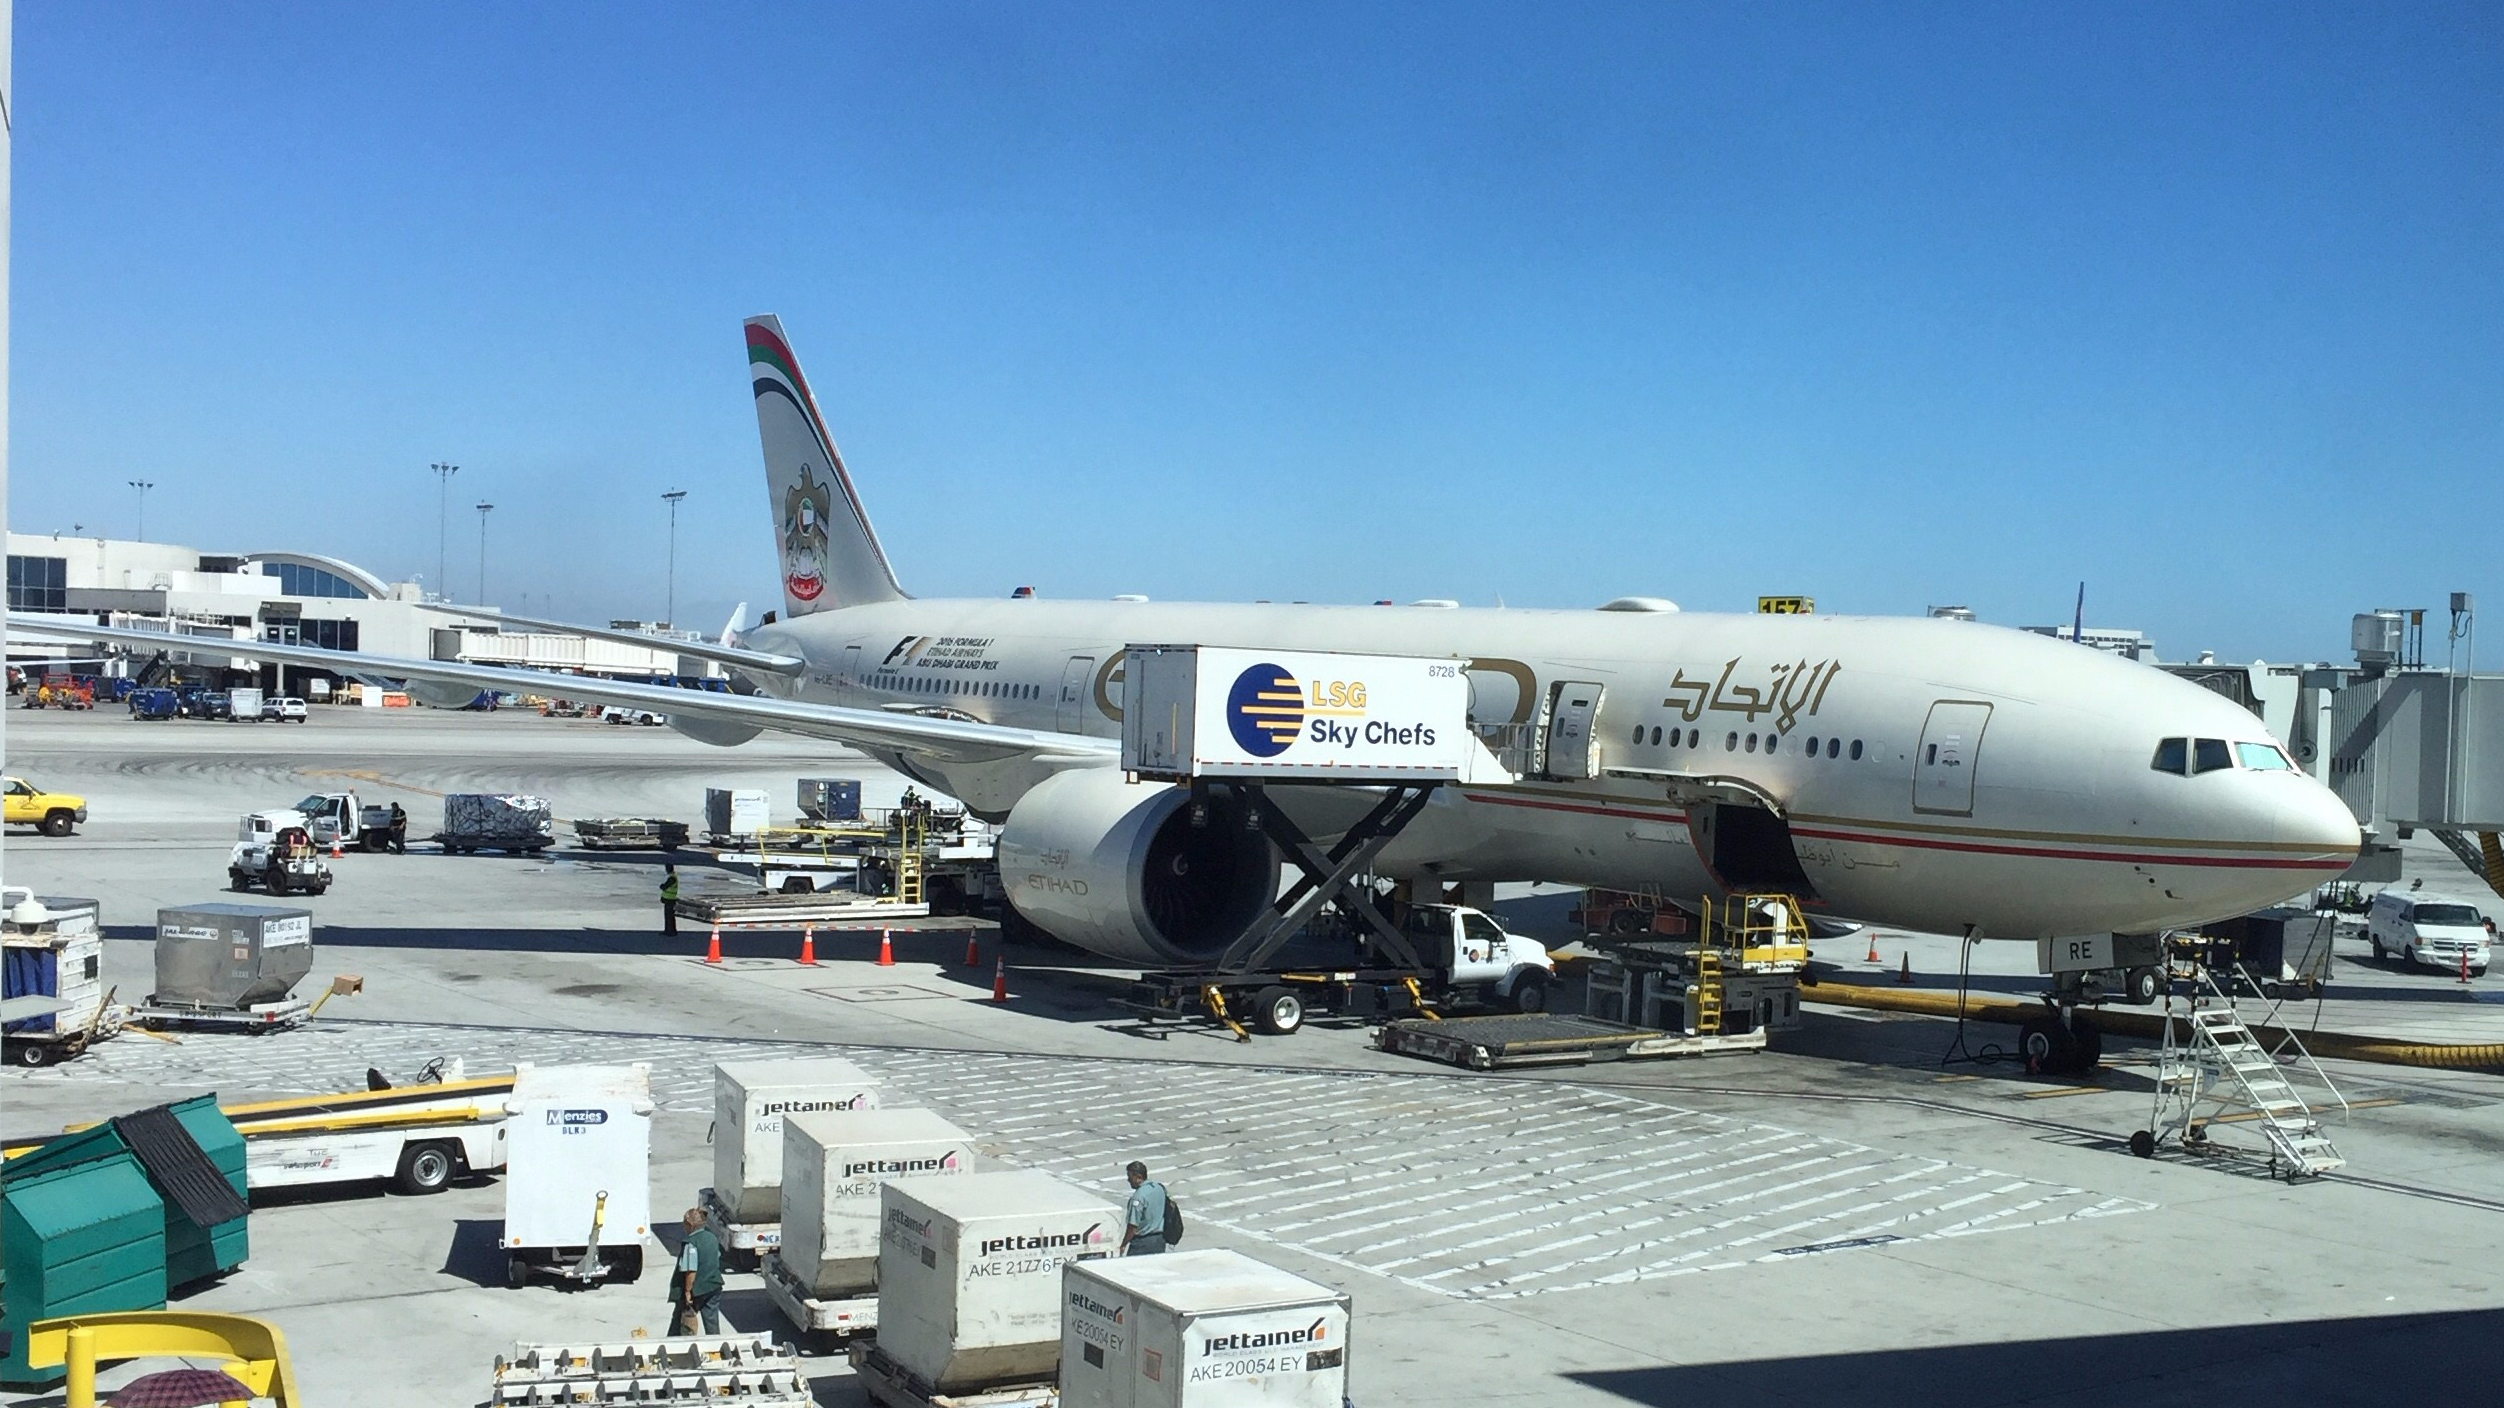 Review: Etihad Airways Economy 777-200LR Los Angeles to Abu Dhabi